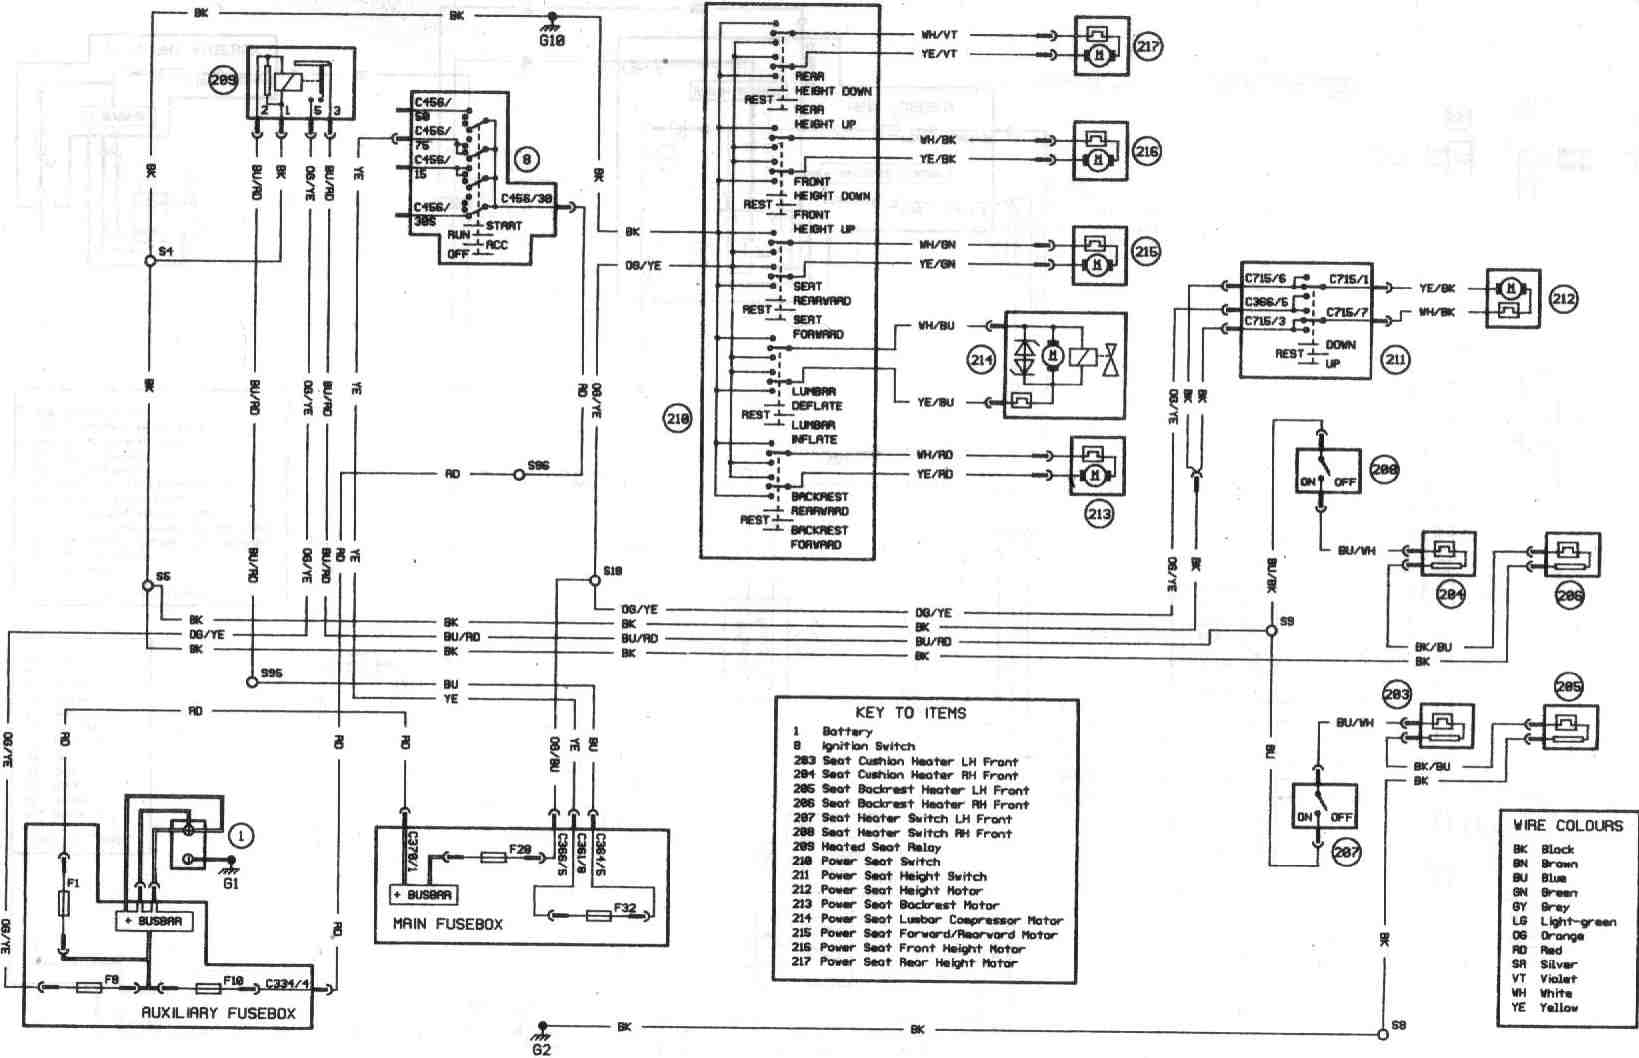 hight resolution of ford focus 2 wiring diagrams wiring diagrams konsult focus mk2 fuse diagram focus mk2 fuse diagram